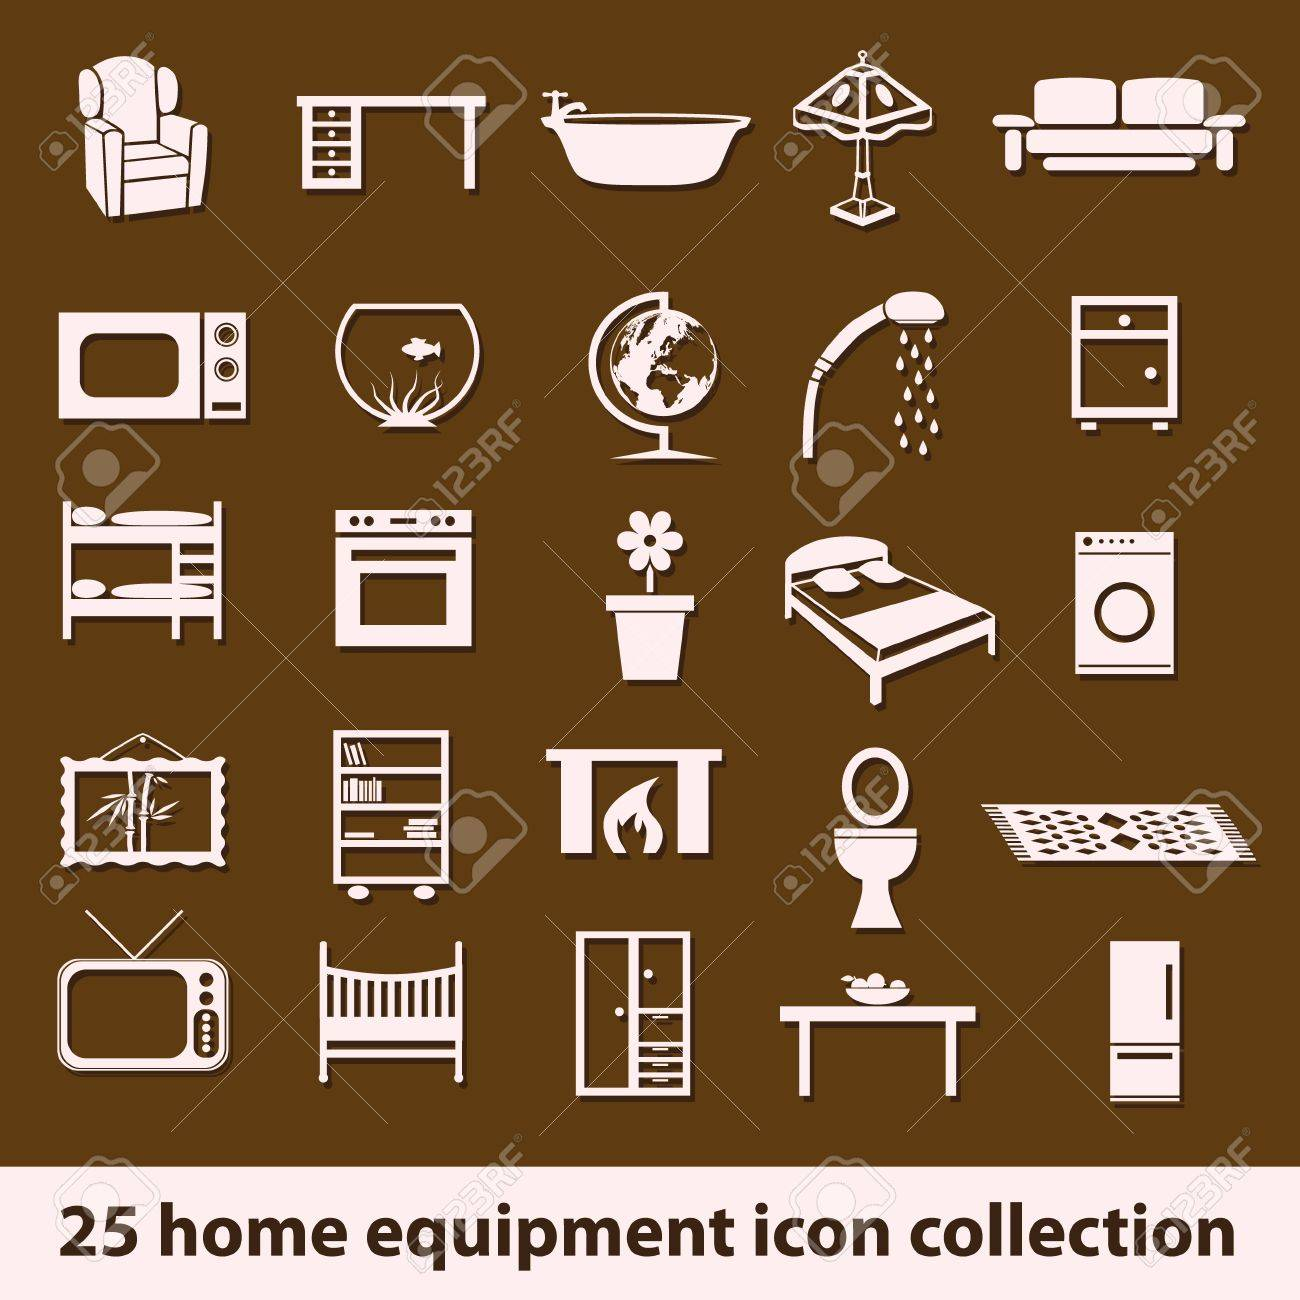 25 home equipment icon collection Stock Vector - 16463712